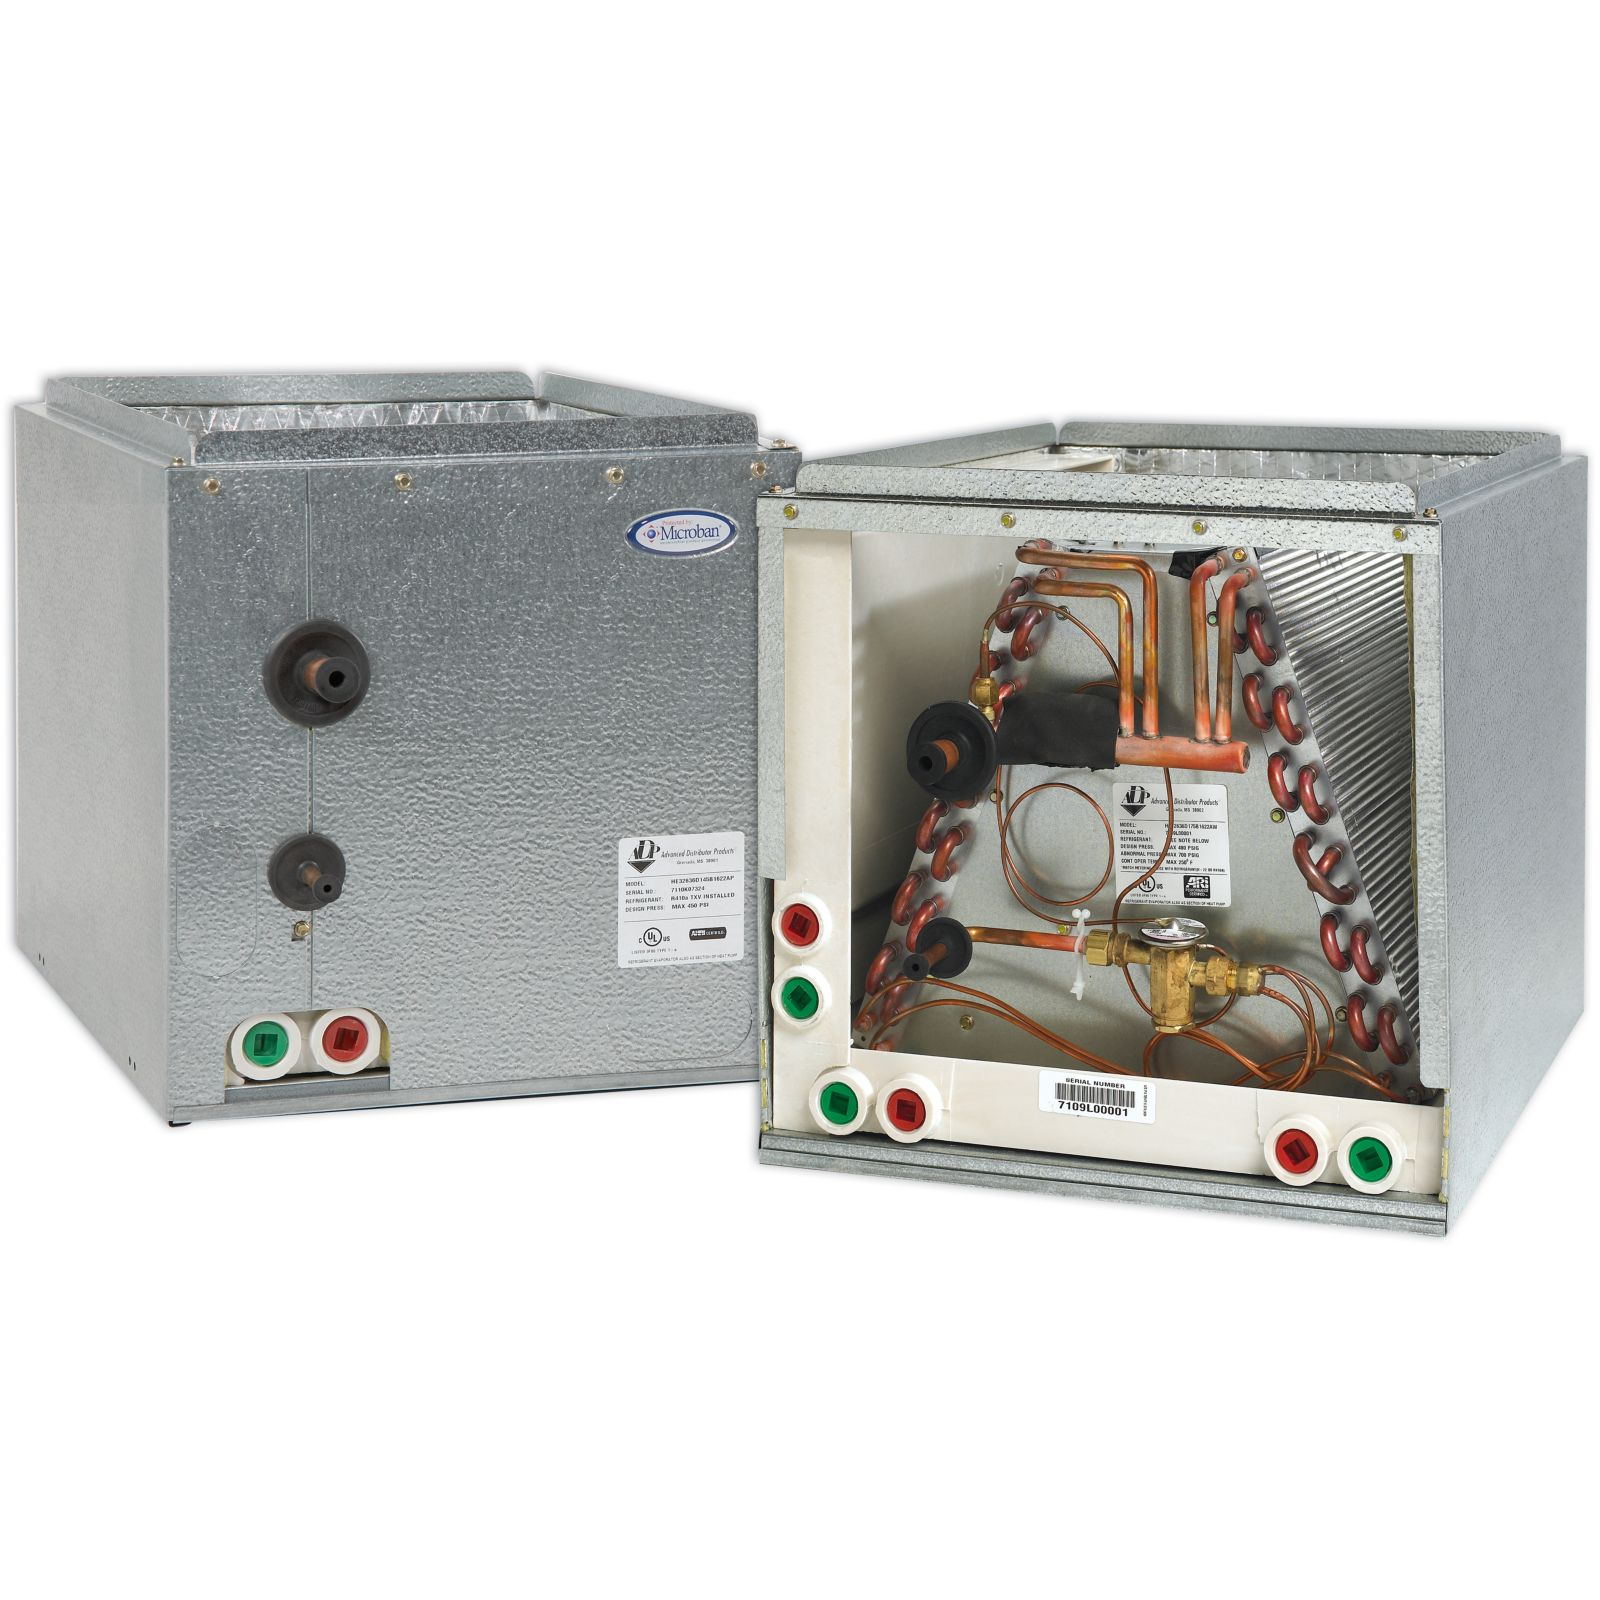 "ADP RE32636C145B1605AP - HE Series Cased Evaporator Coil 3 Ton Copper Left Hand, R410A, 20.5"" X 14.5"" X 16.5"""